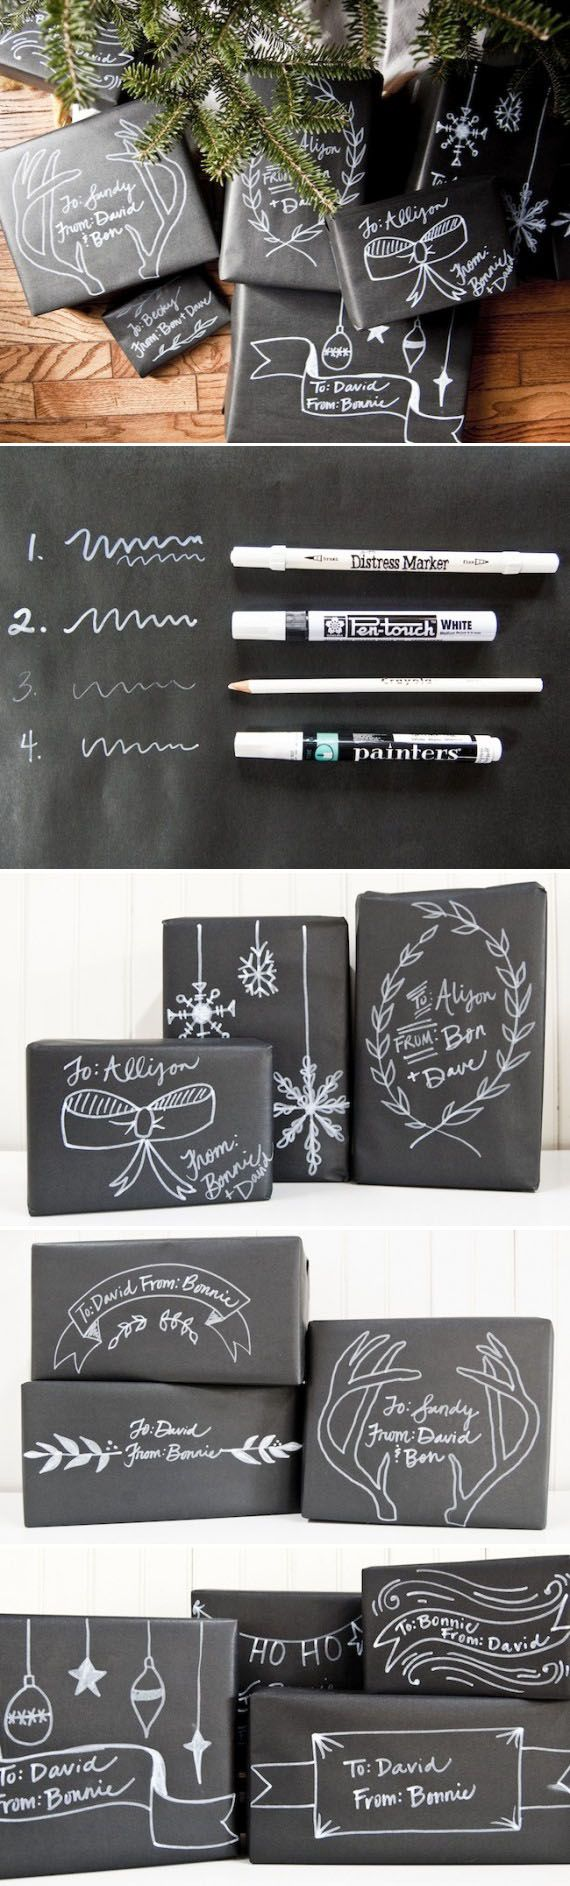 DIY Christmas Chalkboard Gift Packaging with an 'ideas sheet' download, via @ Bonnie Christine: